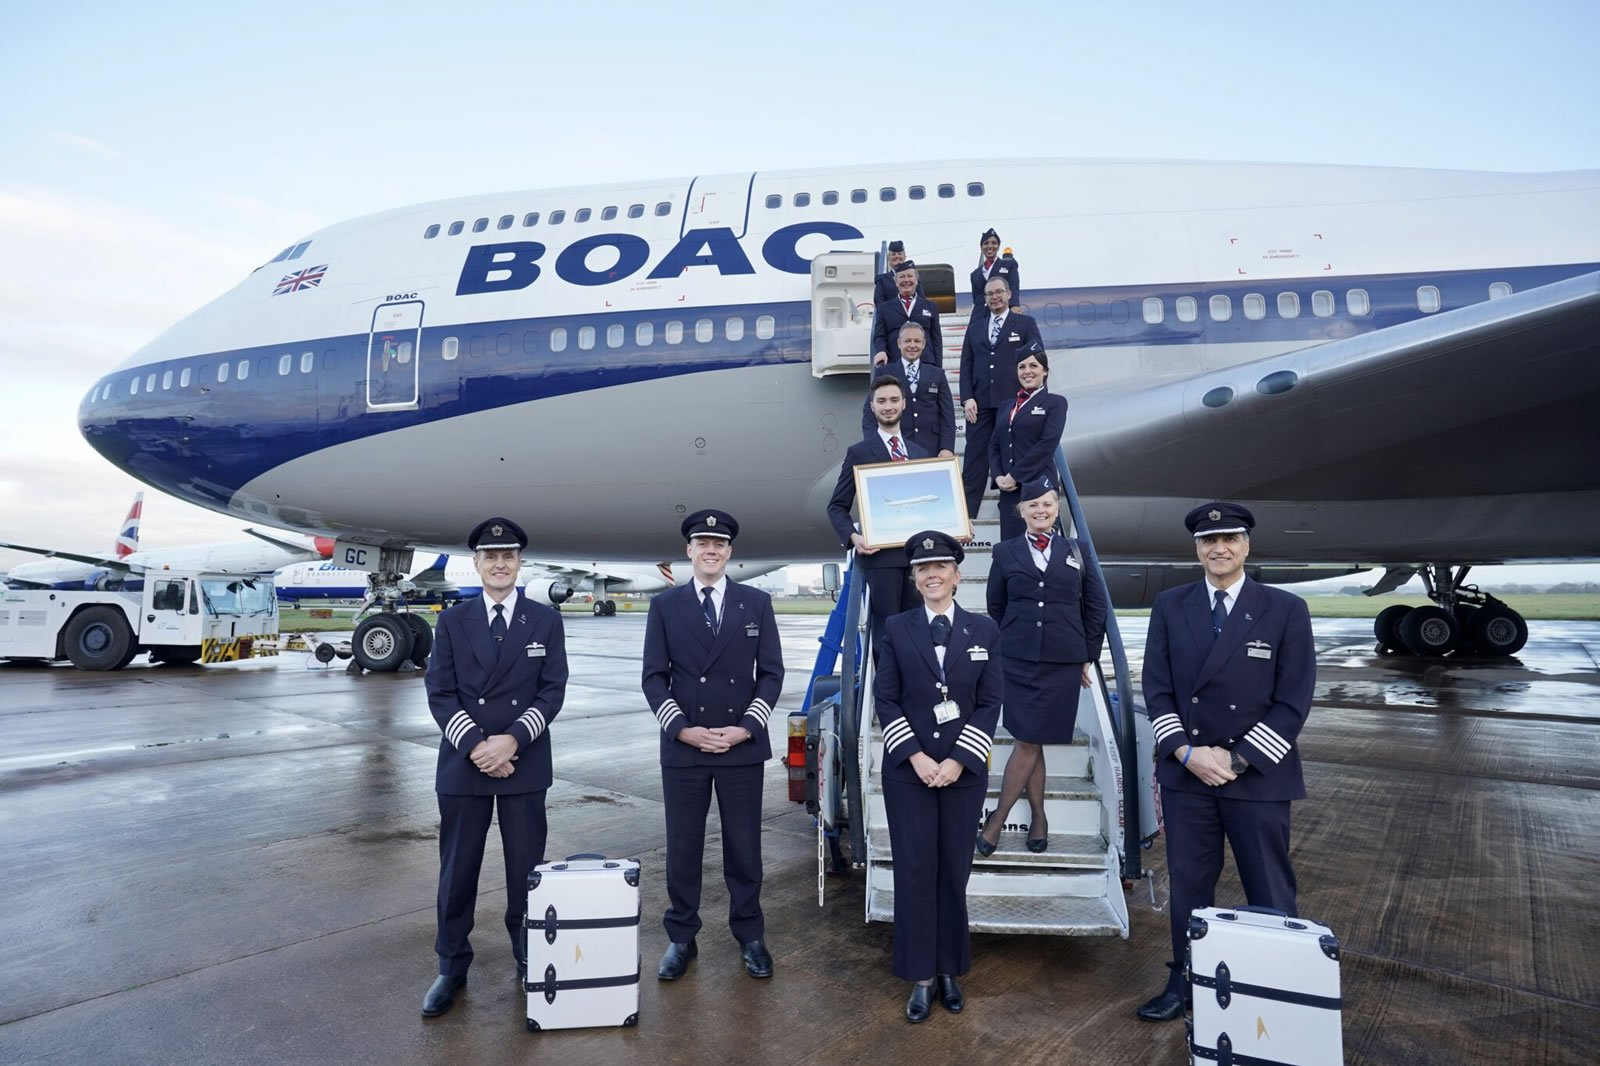 British Airways is selling $2,00 suitcases made from the parts of retired Boeing 747 jets